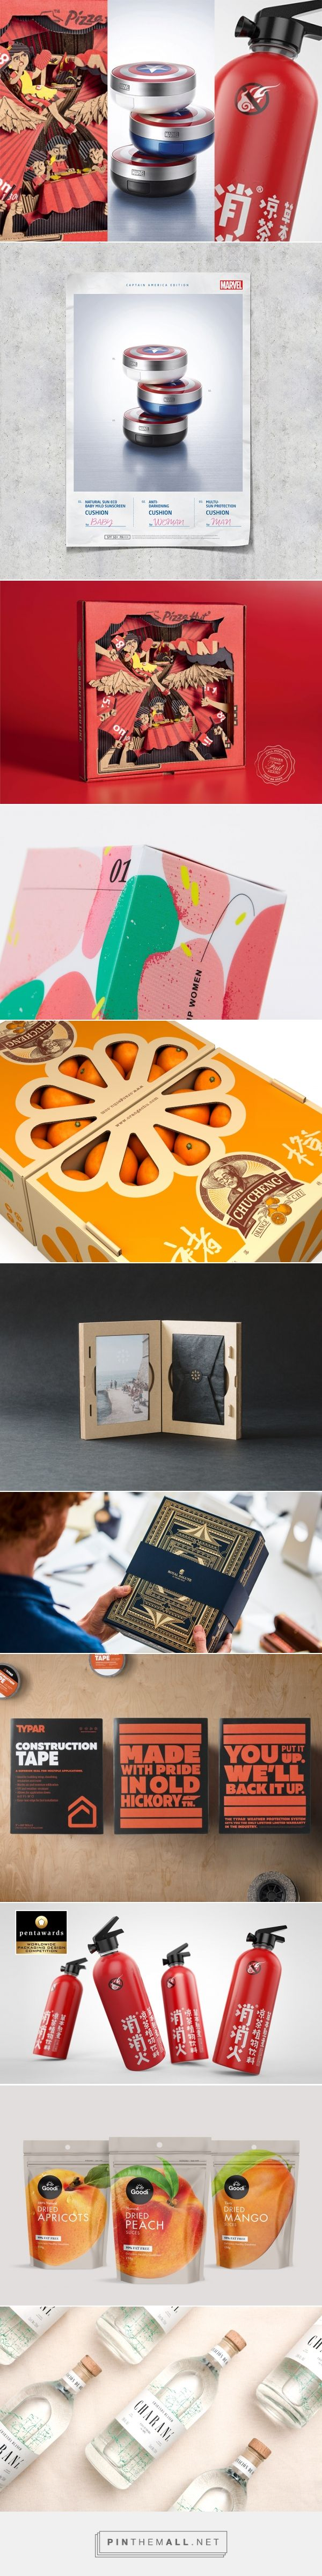 Check out these top packaging projects featured in August! - http://www.packagingoftheworld.com/2017/09/packaging-you-shouldnt-miss-in-august.html